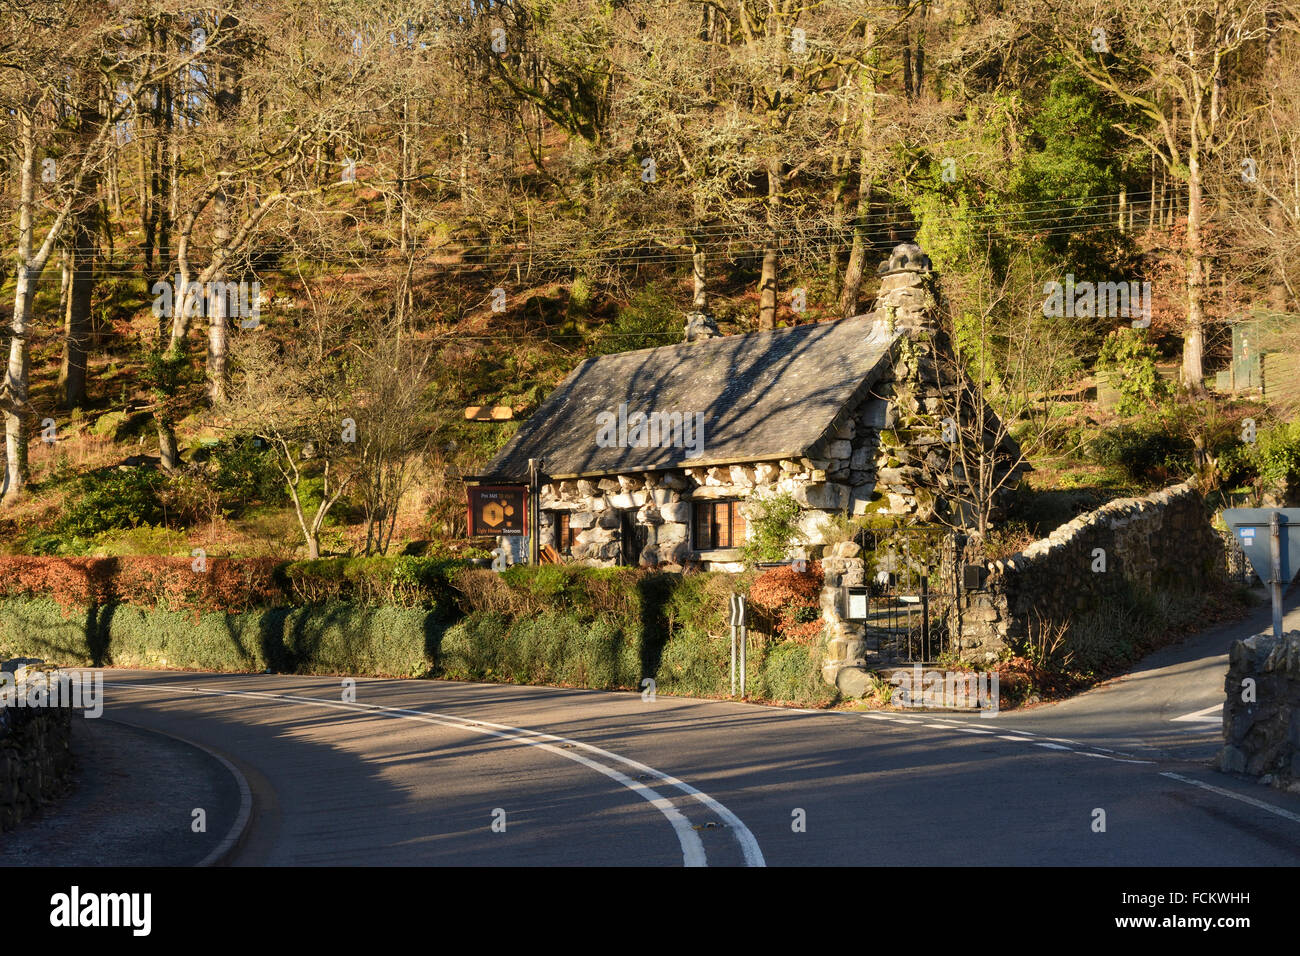 Ty Hyll, the Ugly House on the main A5 London to Holyhead road at Capel Curig, Gwynedd. - Stock Image